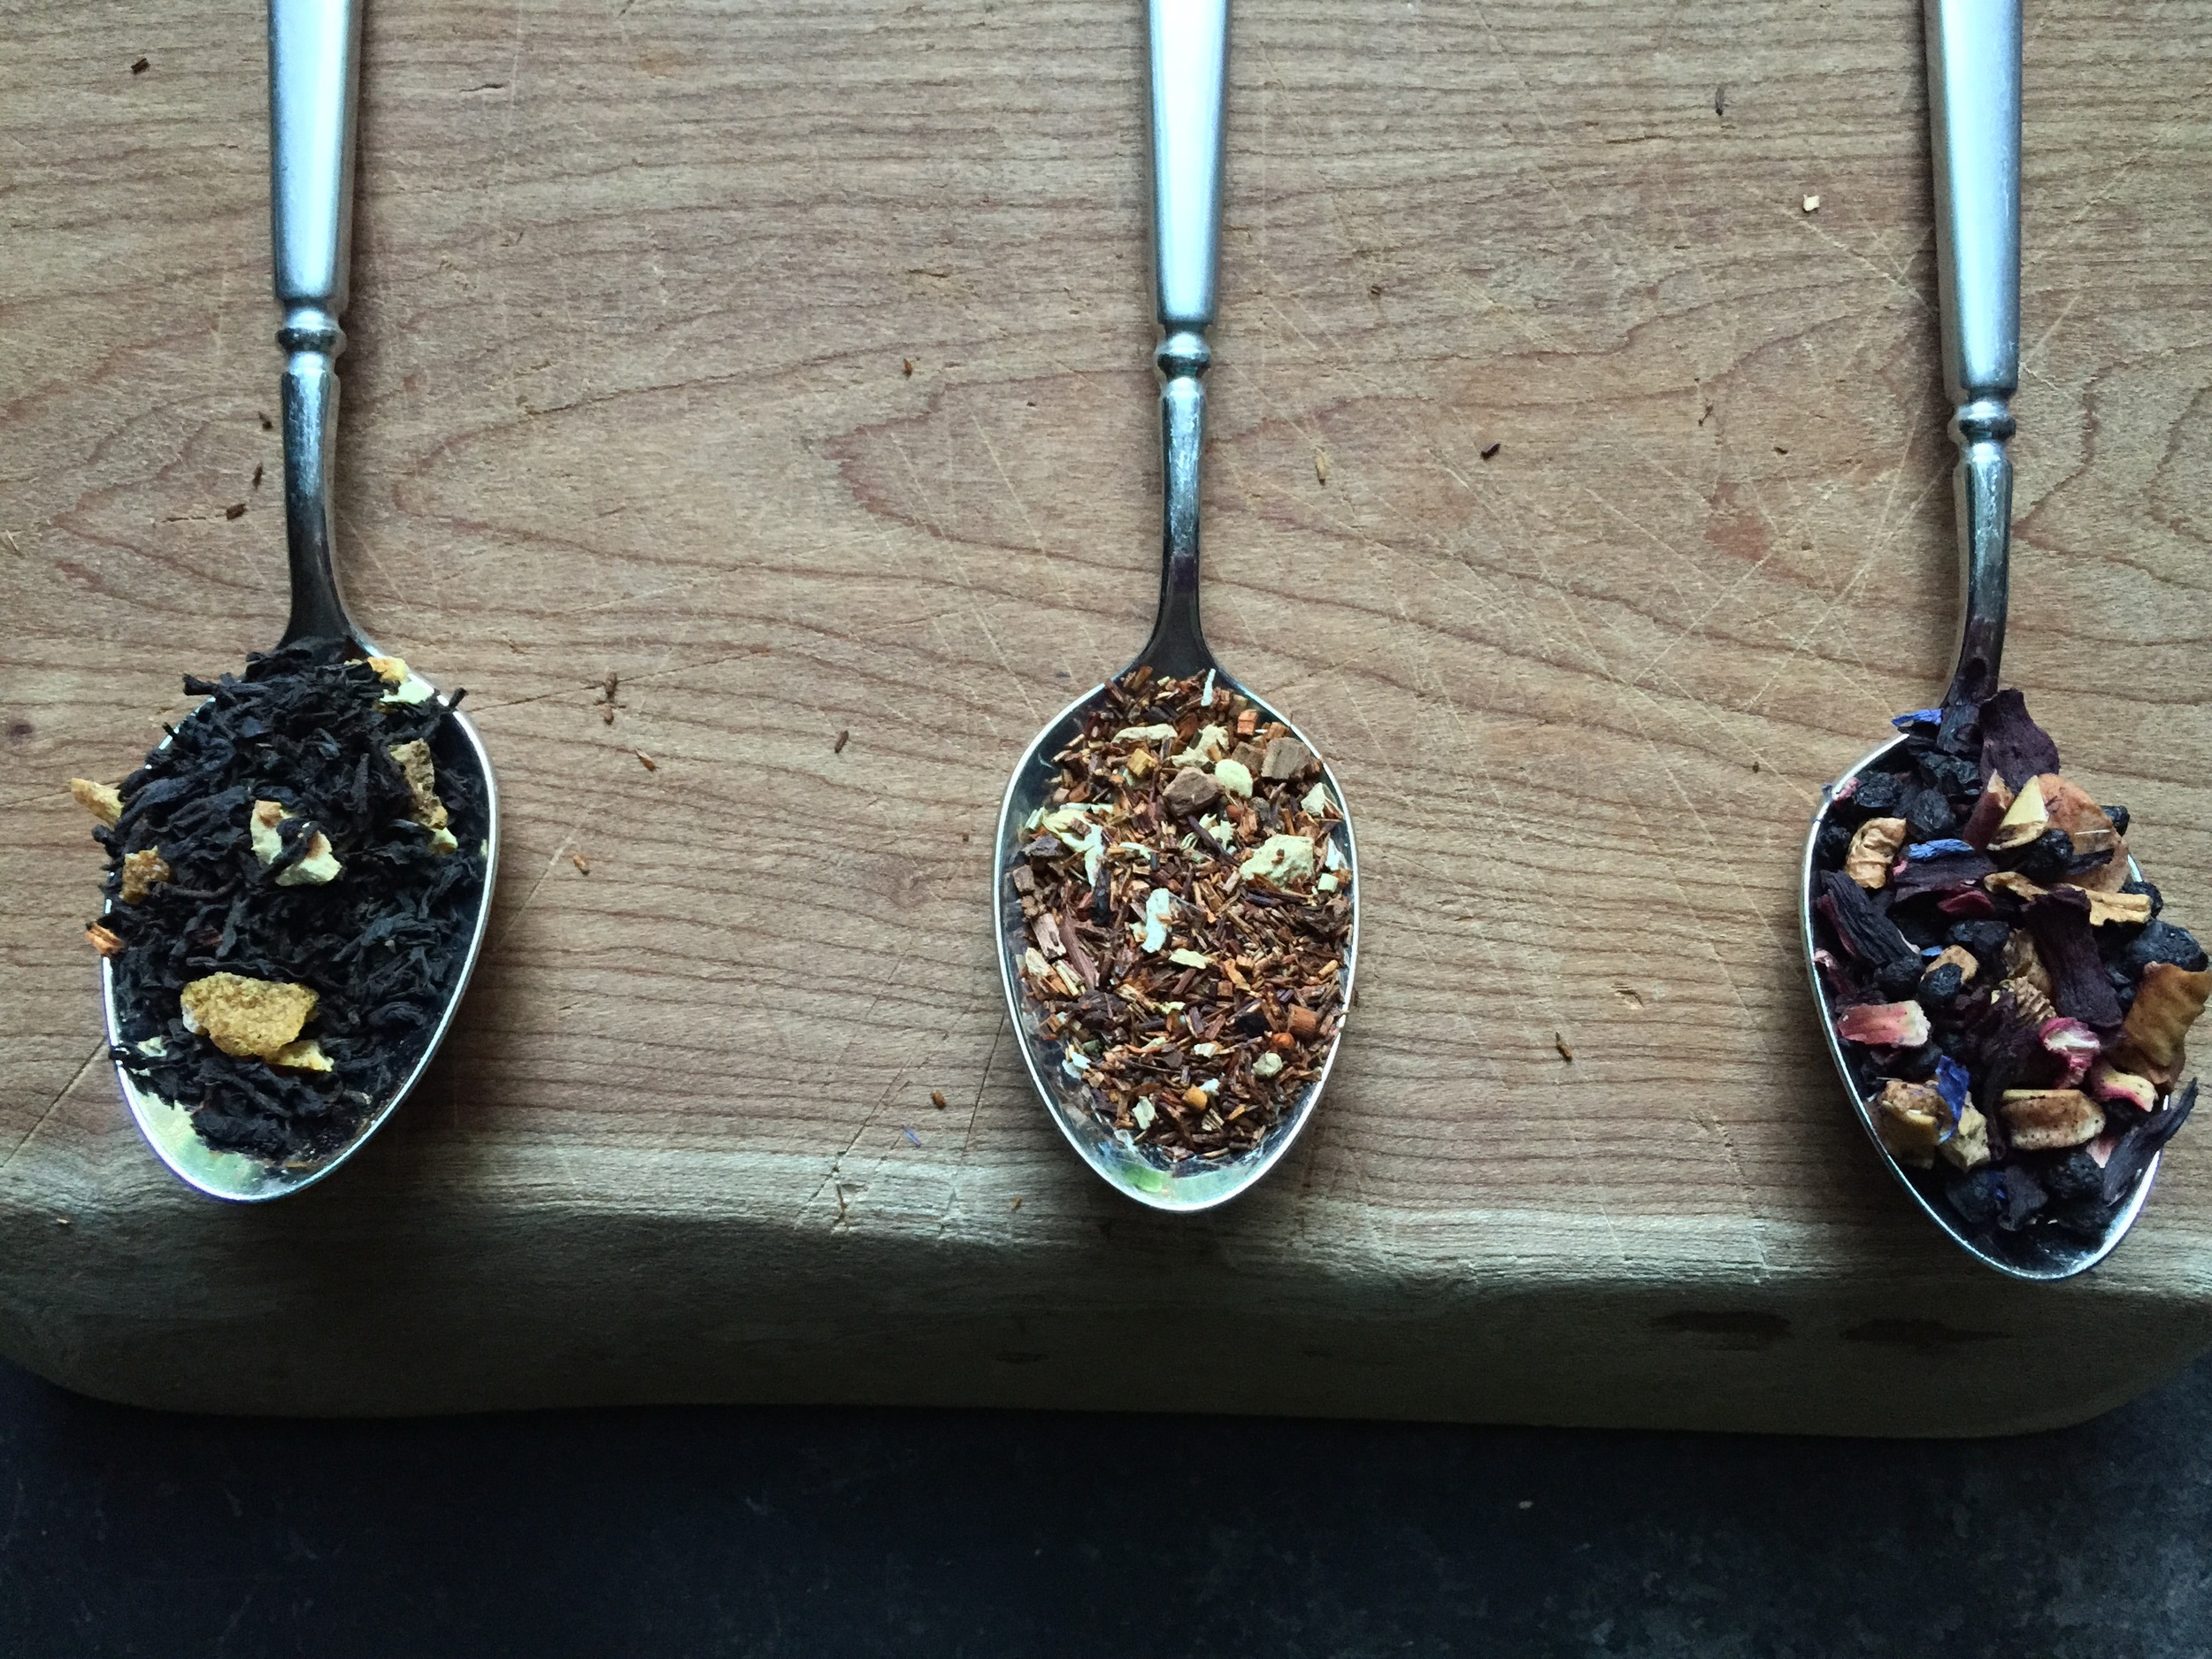 Left to right: Hammock Blend from Plum Deluxe, Coconut Gingersnap from Divinitea and Bingo Blueberry from Fieldstone.